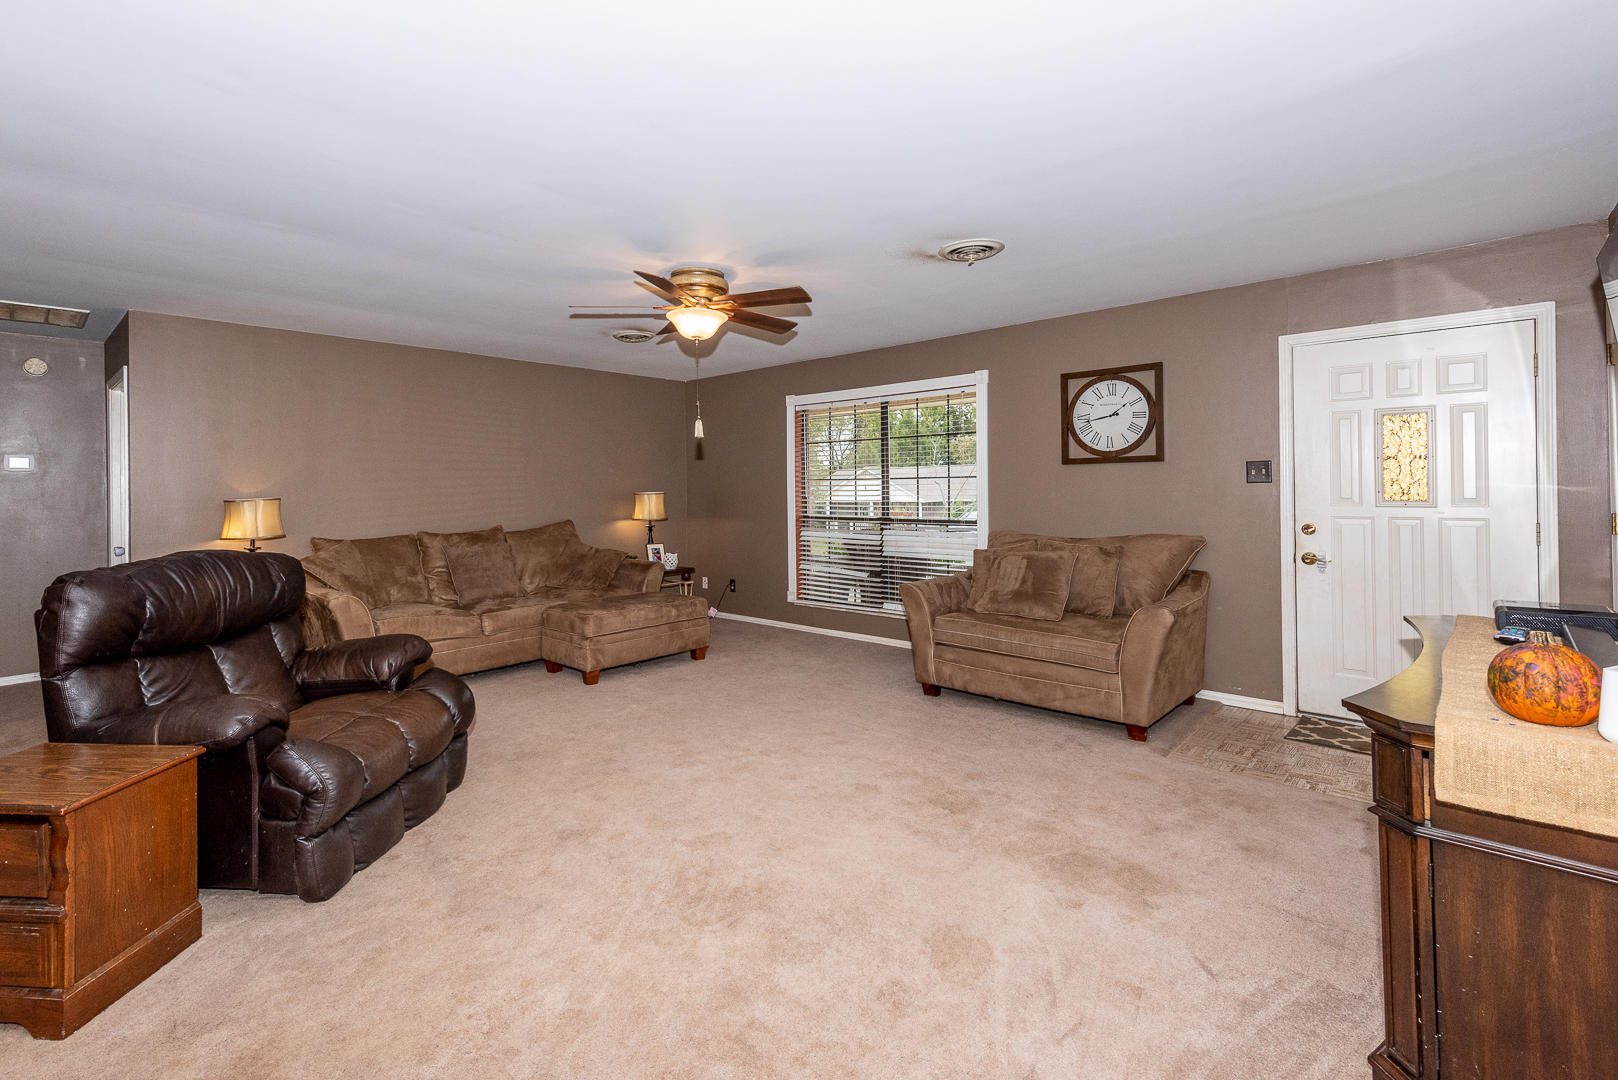 2023 Raulston View Drive, Maryville, Tennessee 37803, 3 Bedrooms Bedrooms, ,2 BathroomsBathrooms,Single Family,For Sale,Raulston View,1097978